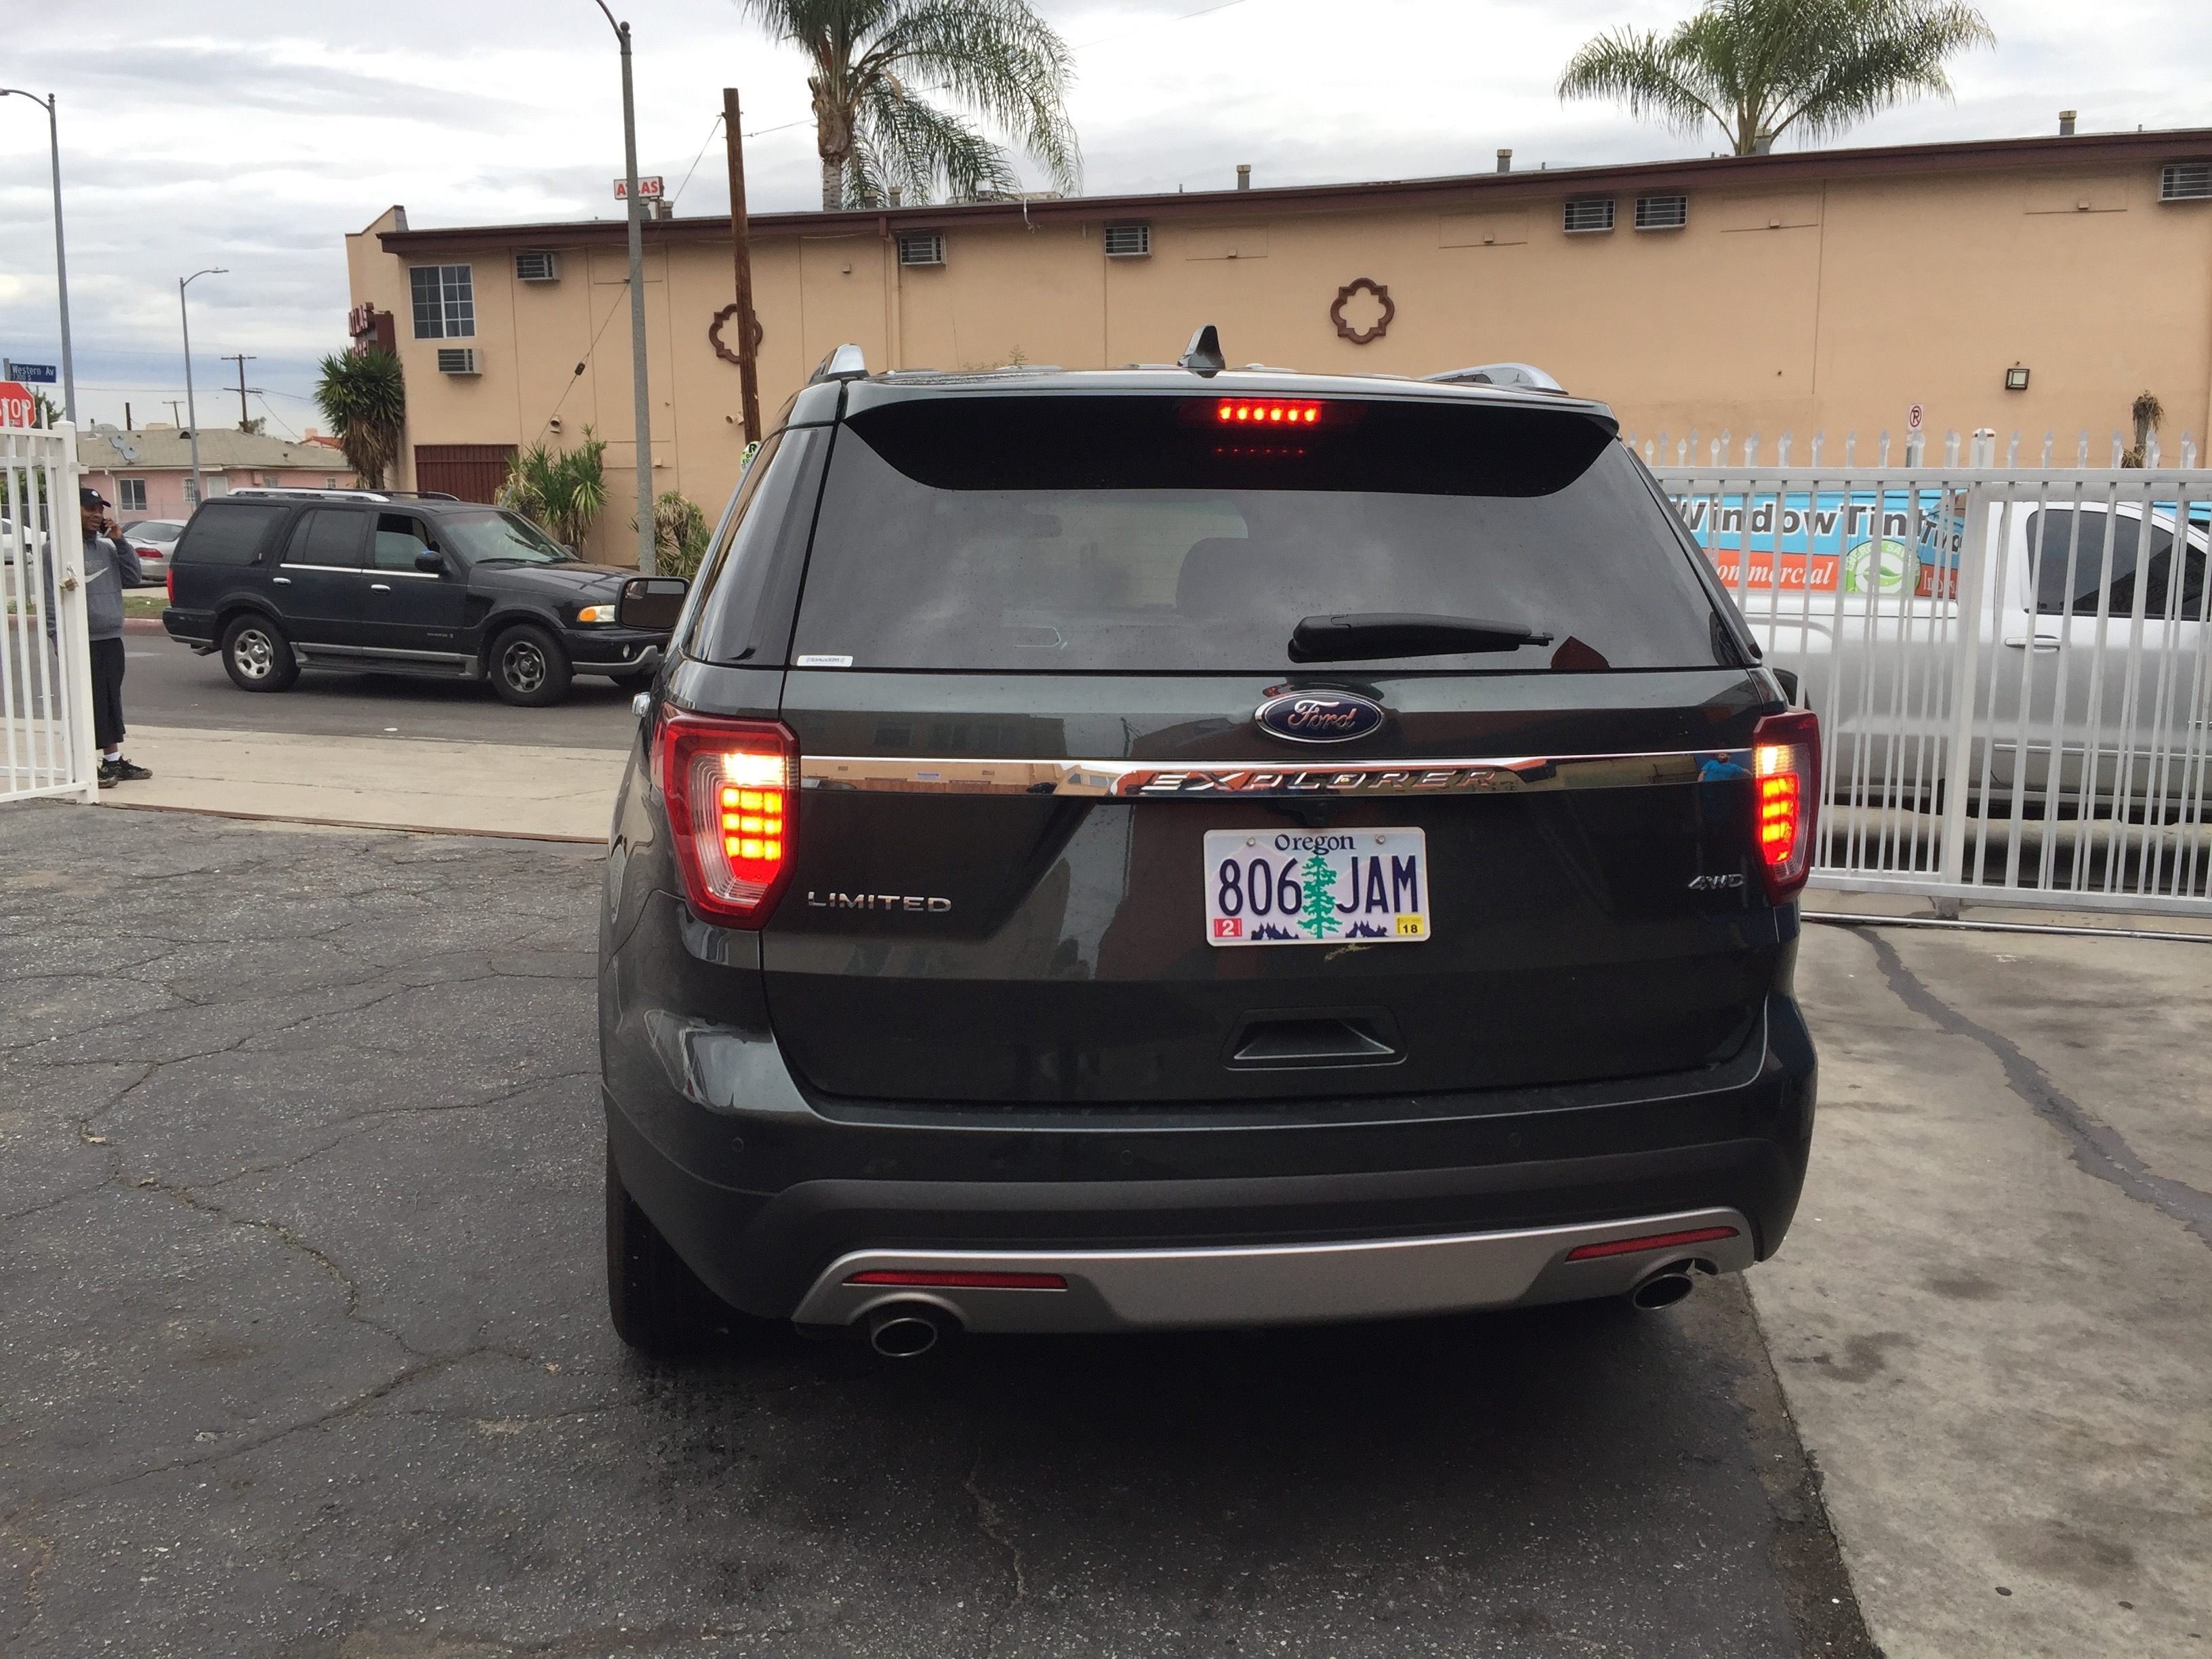 Ford Window Tint Los Angeles Window Tint Z